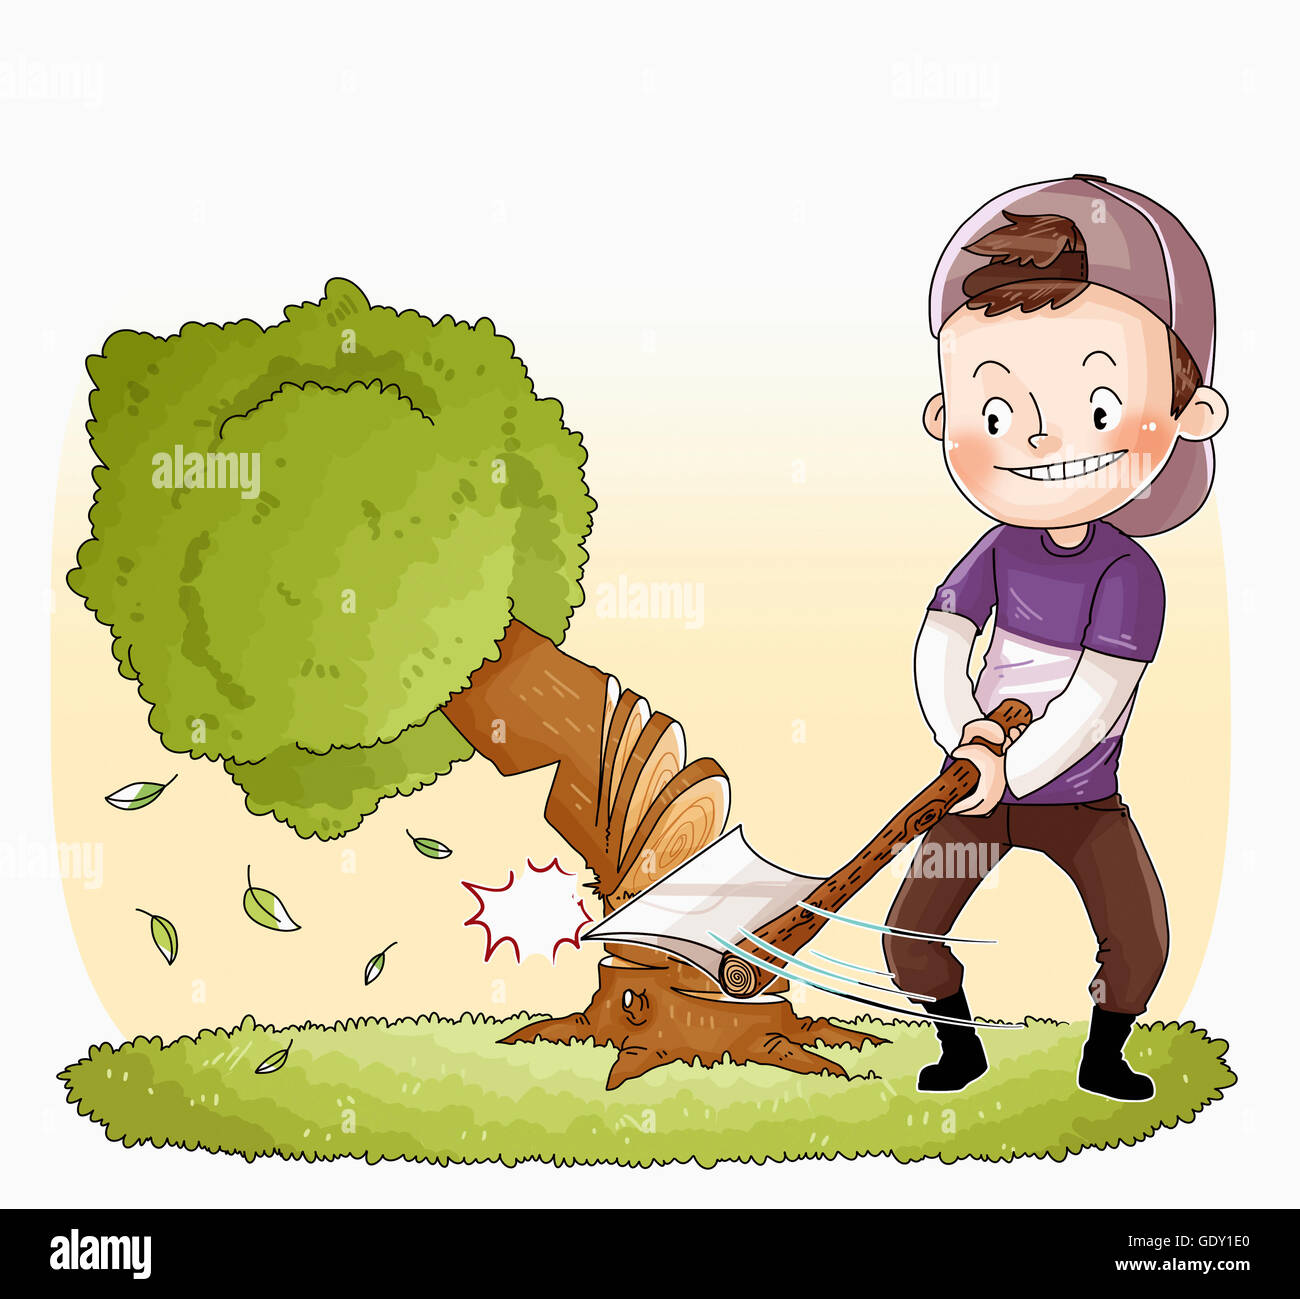 Smiling Man Cutting Down A Tree With An Ax Stock Photo Alamy If you cut down a tree you should plant another one and most people don't replant trees. https www alamy com stock photo smiling man cutting down a tree with an ax 111846616 html